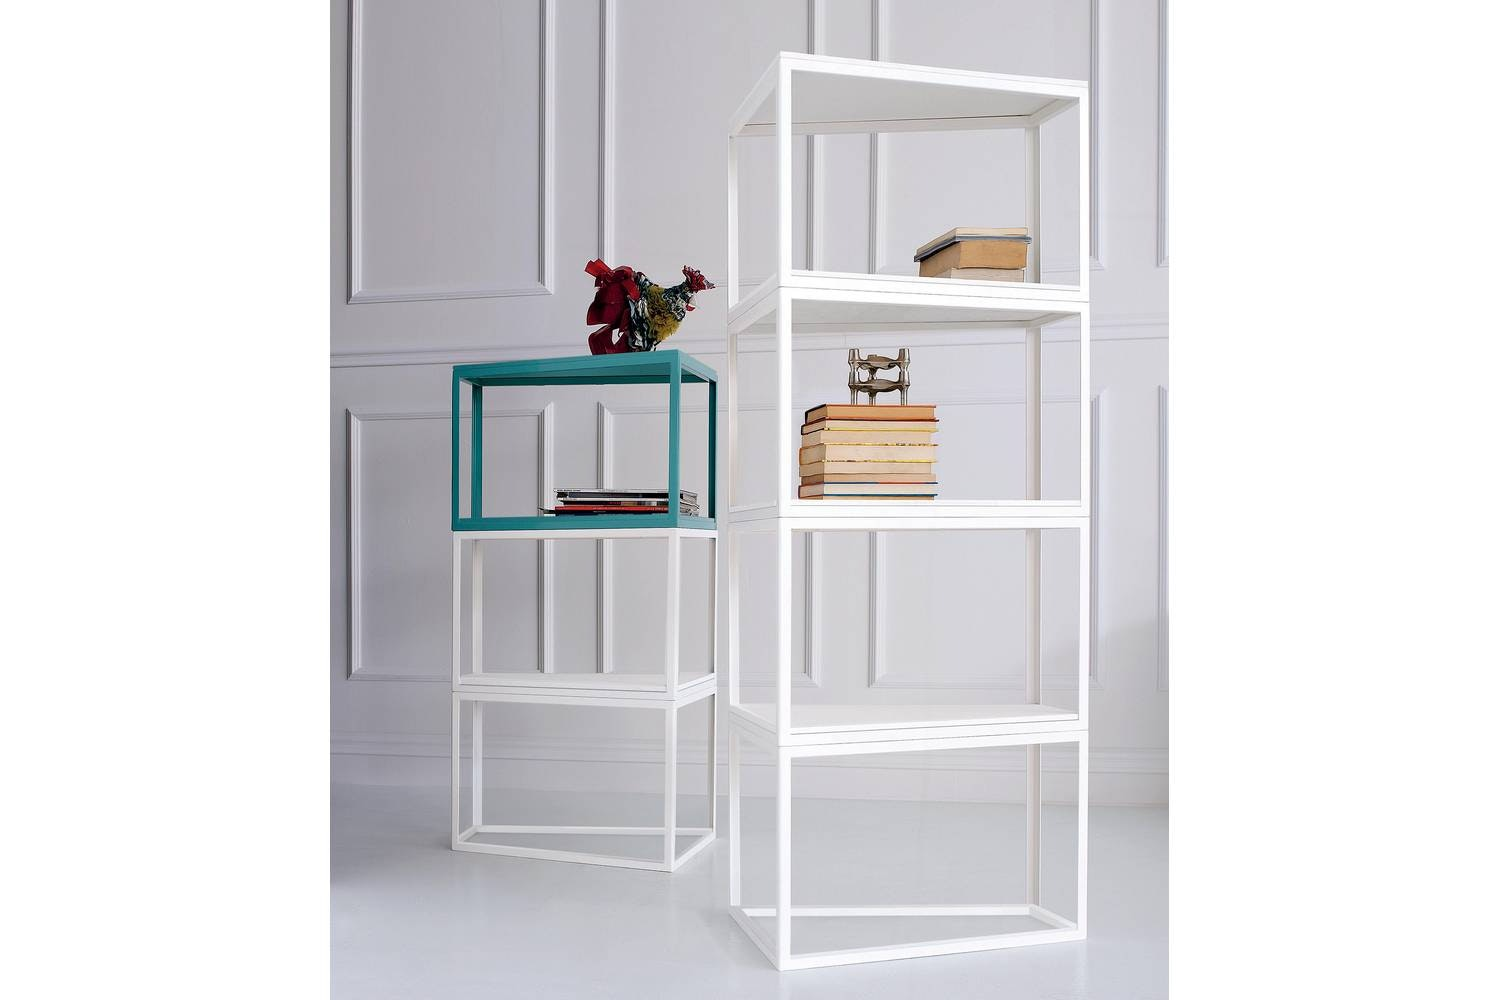 Filu Bookcase by Paola Vella for Arflex